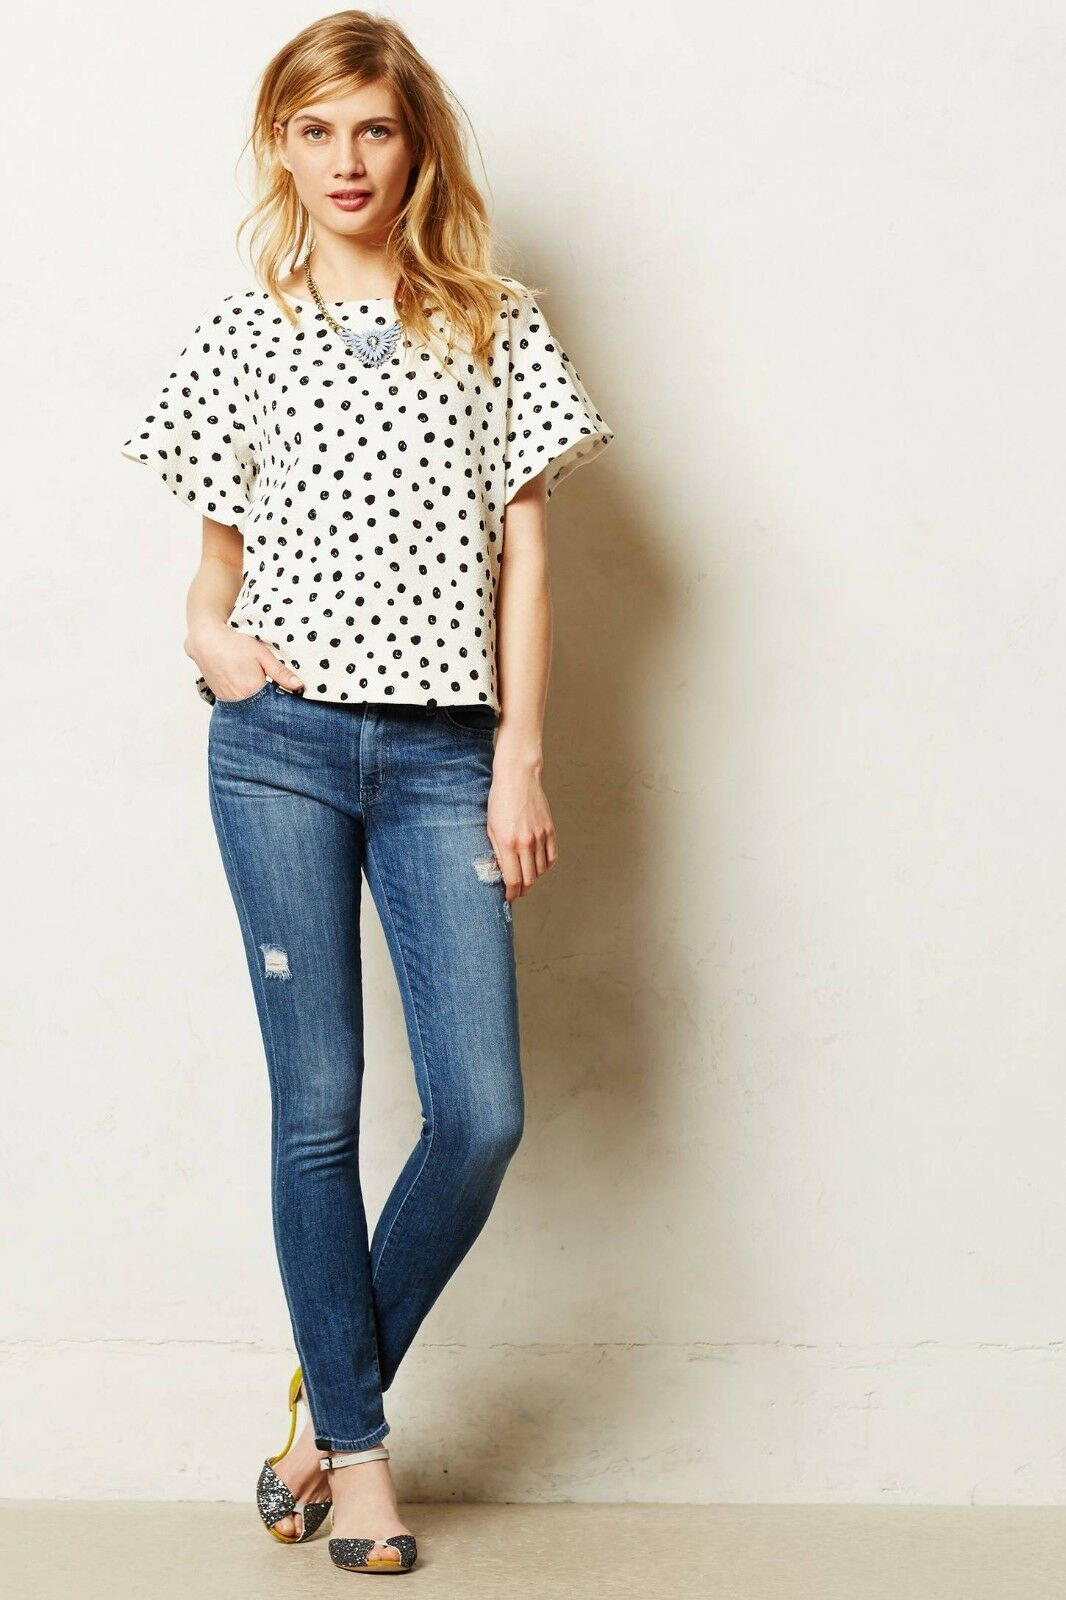 Anthropologie Status Koral Skinny Size.32  Org. 235.00 New With Tag